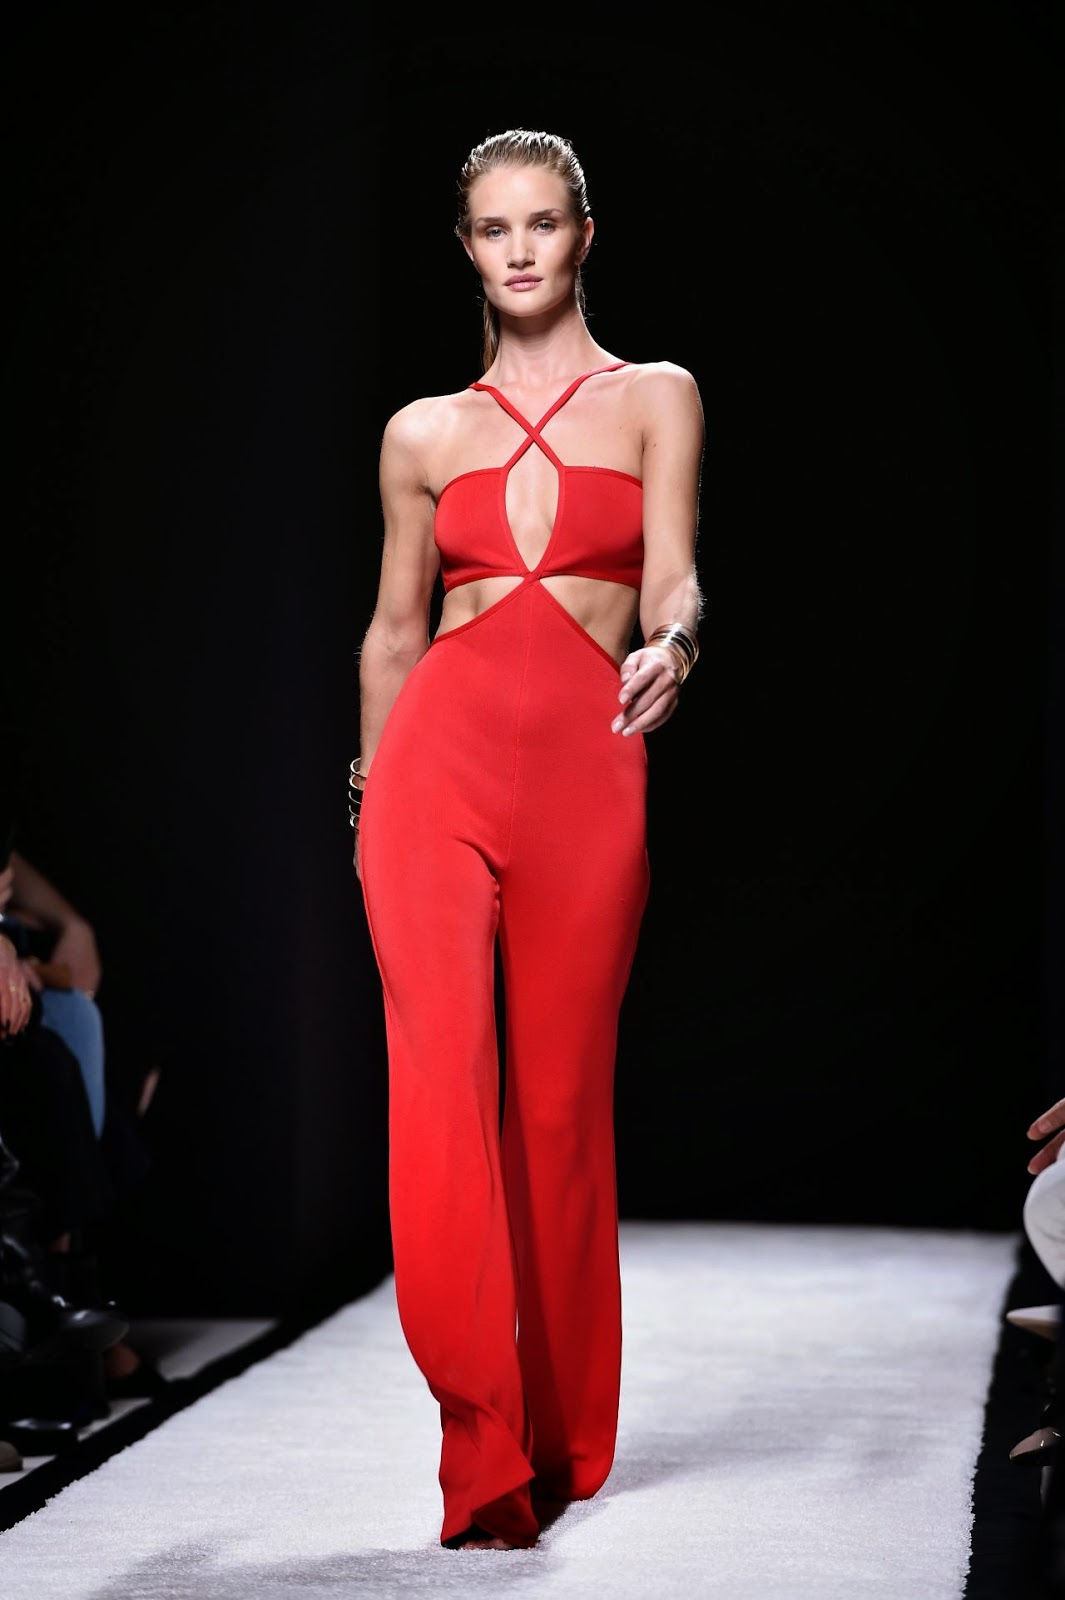 Rosei Huntington-Whiteley walks the Balmain Spring/Summer 2015 Paris Fashion Week Show in a revealing jumpsuit